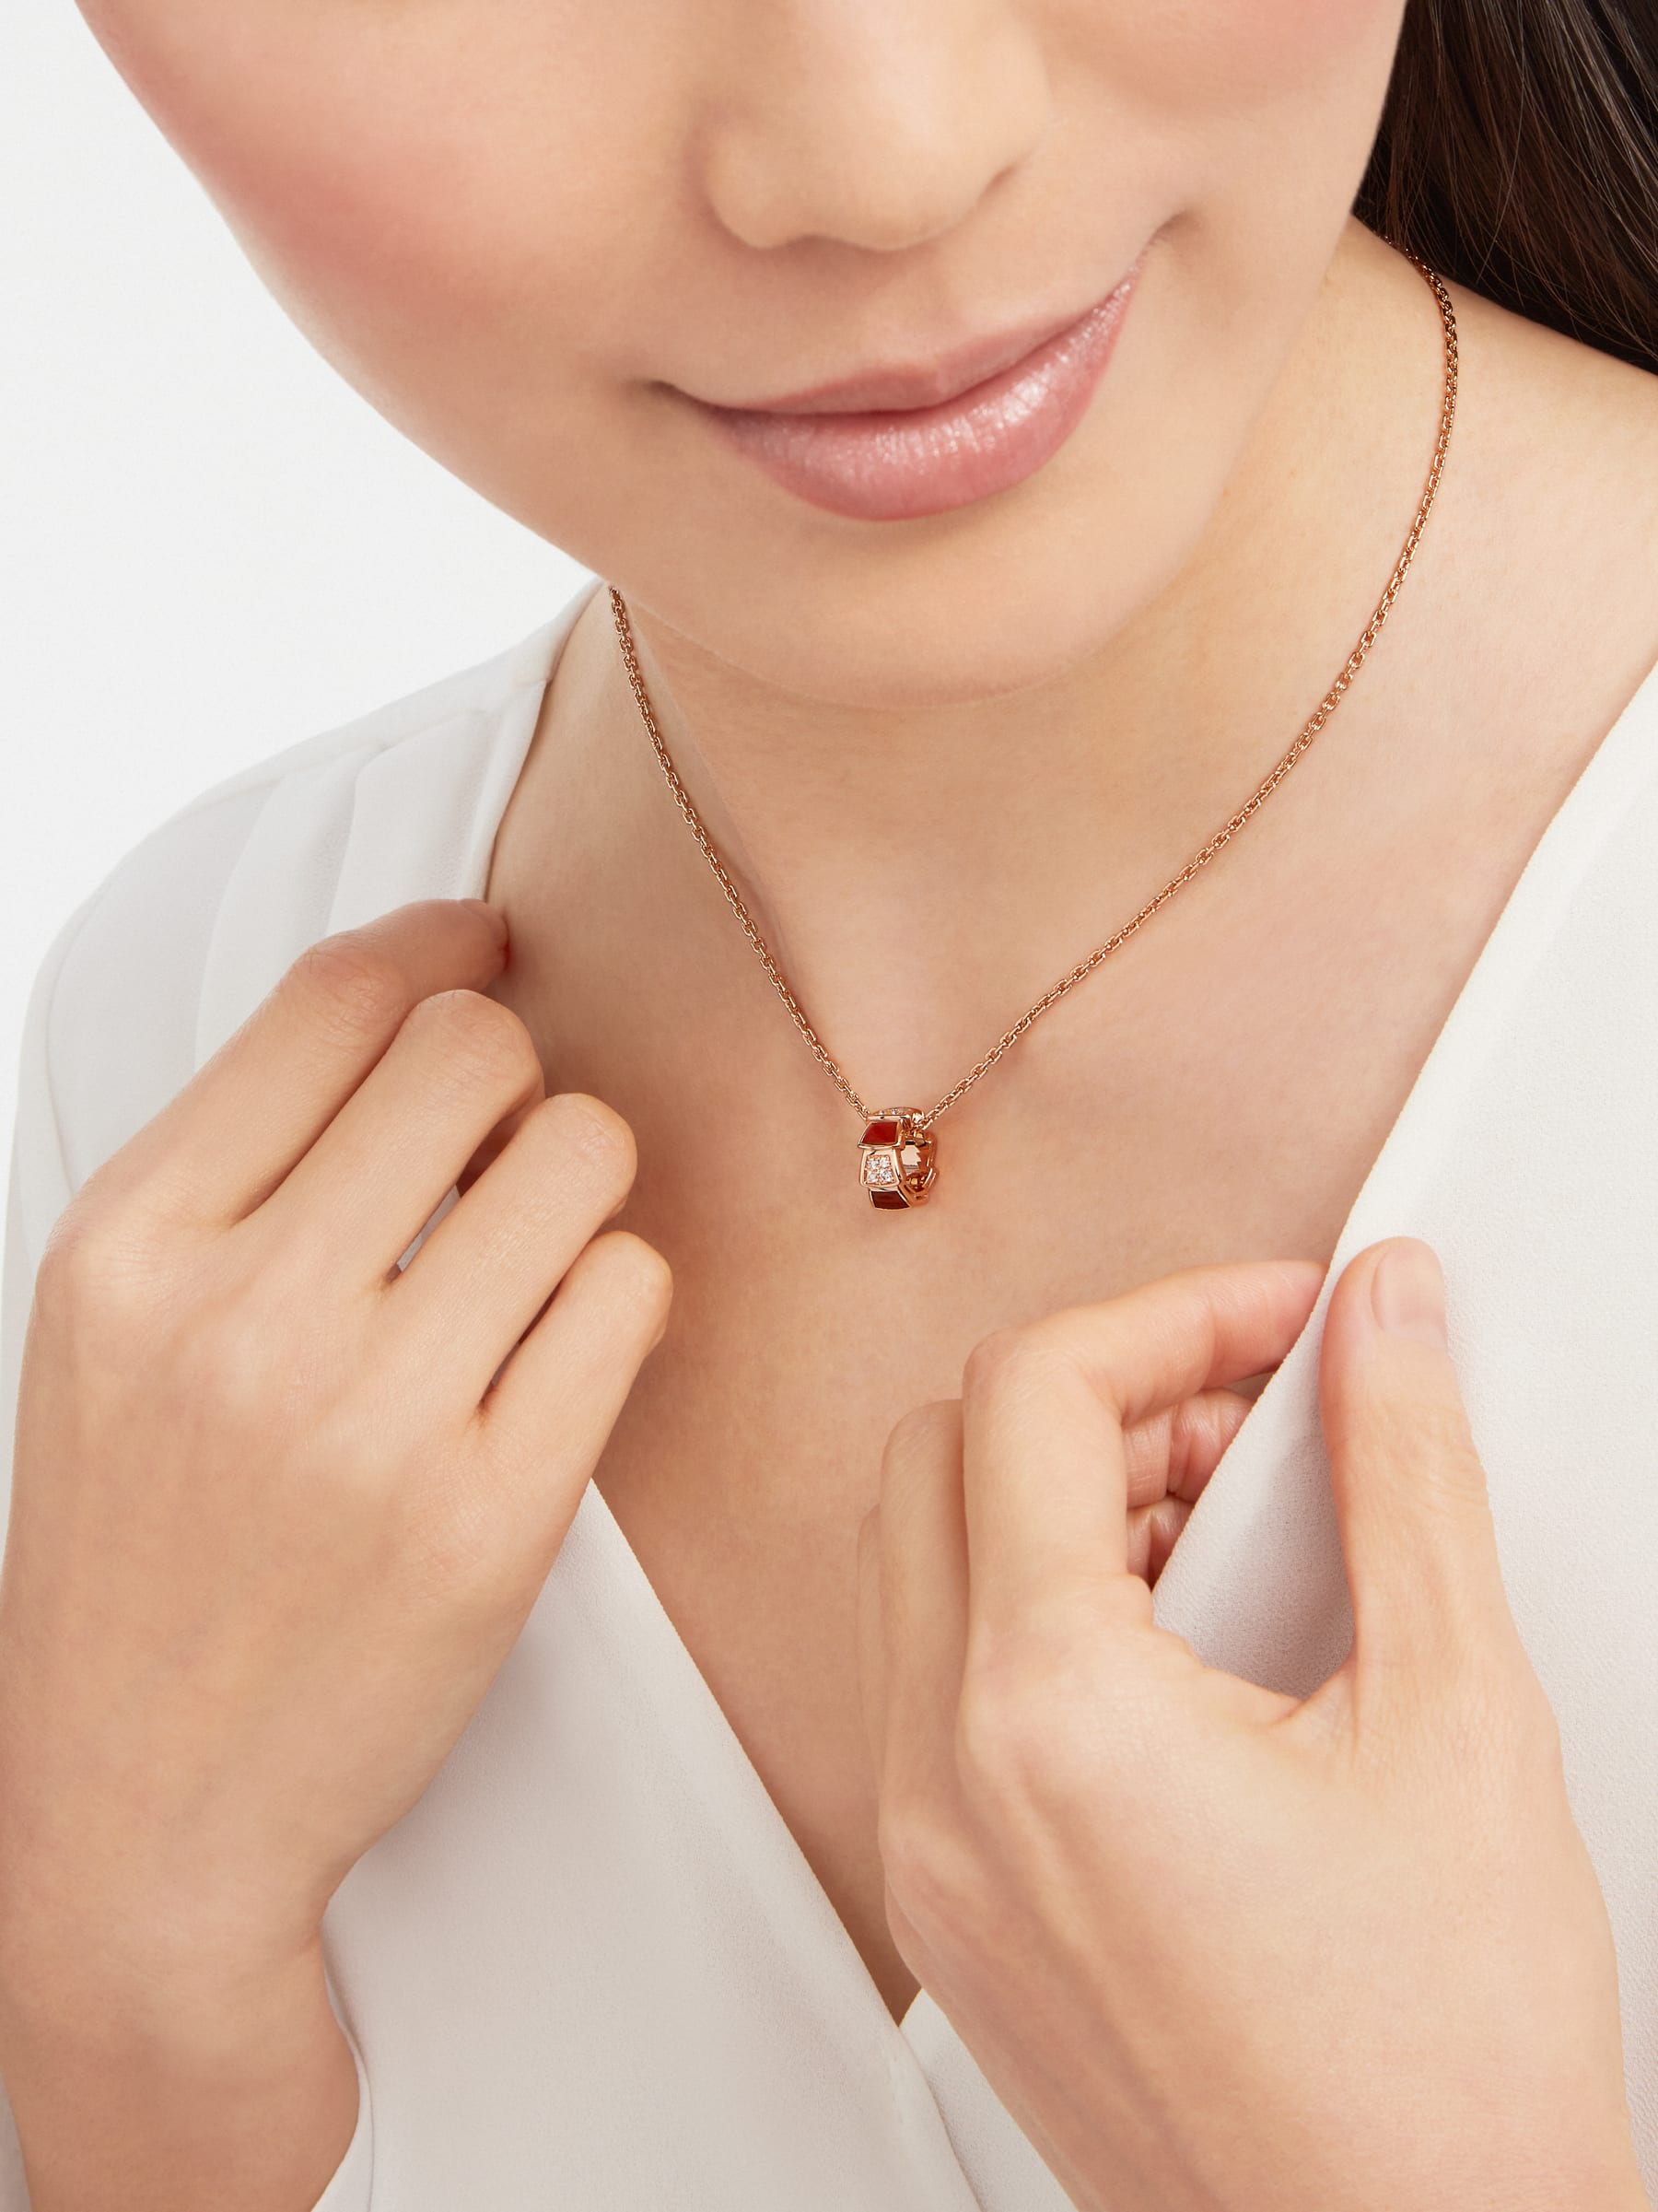 Serpenti Viper necklace with 18 kt rose gold chain and 18 kt rose gold pendant set with carnelian elements and demi pavé diamonds. 355088 image 2